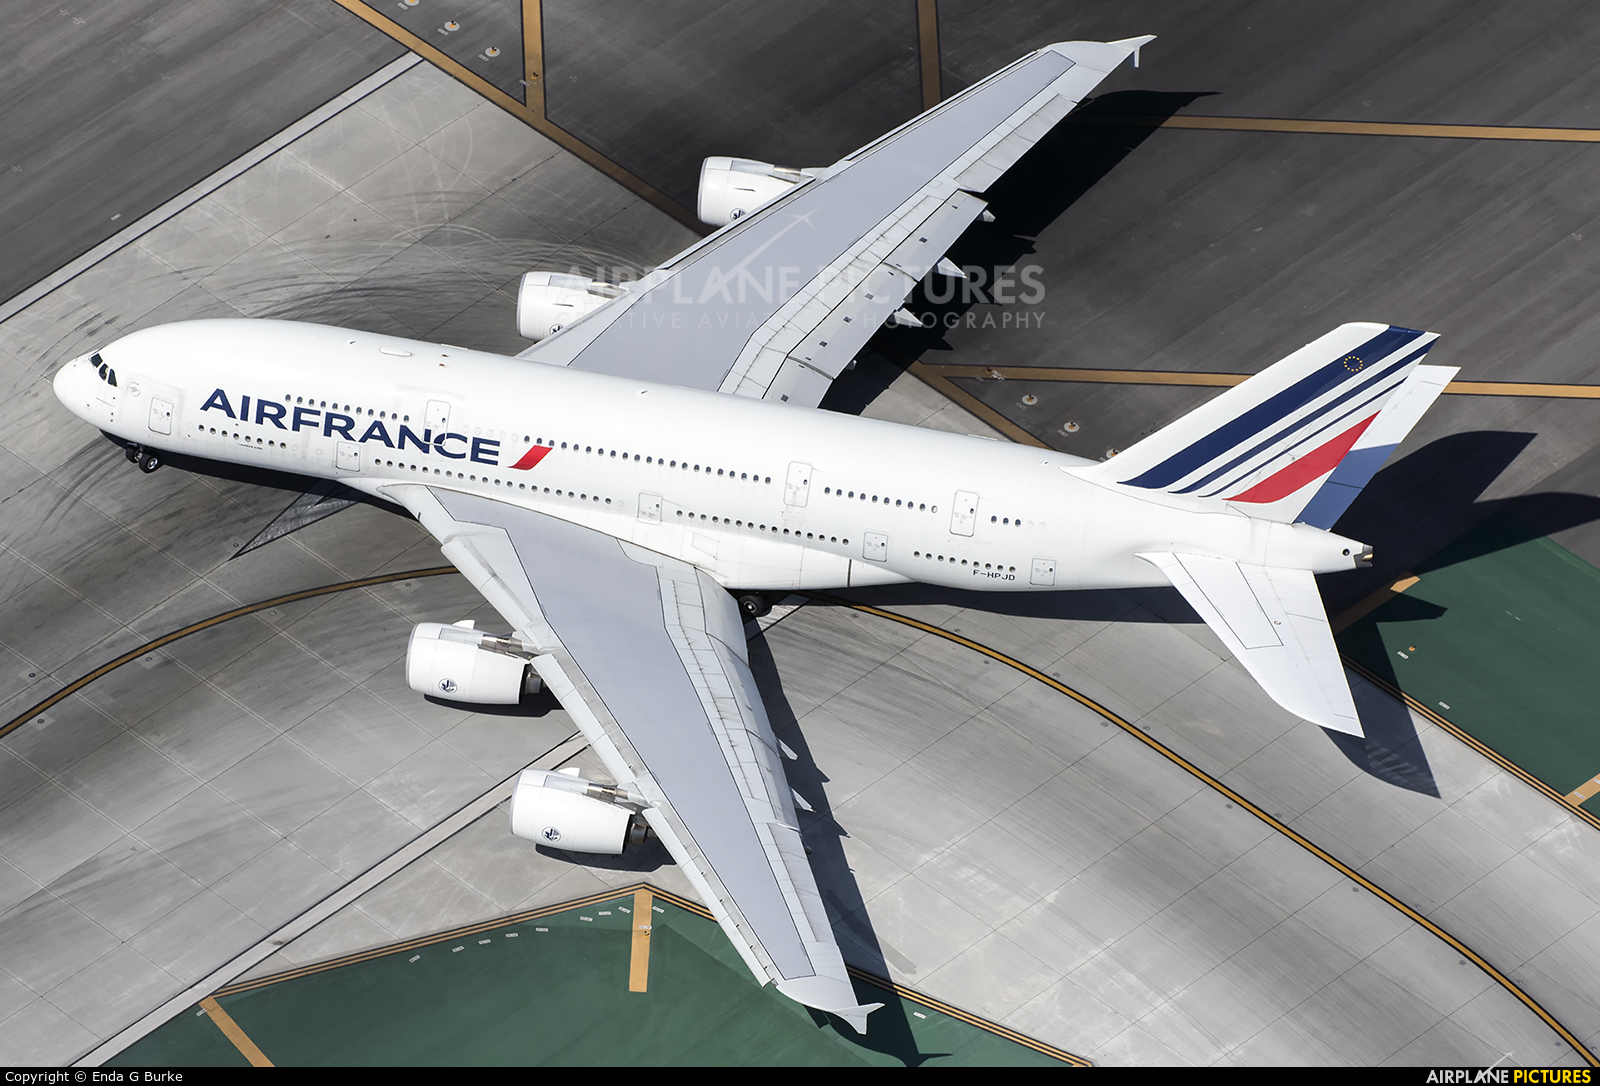 Air France F-HPJD aircraft at Los Angeles Intl